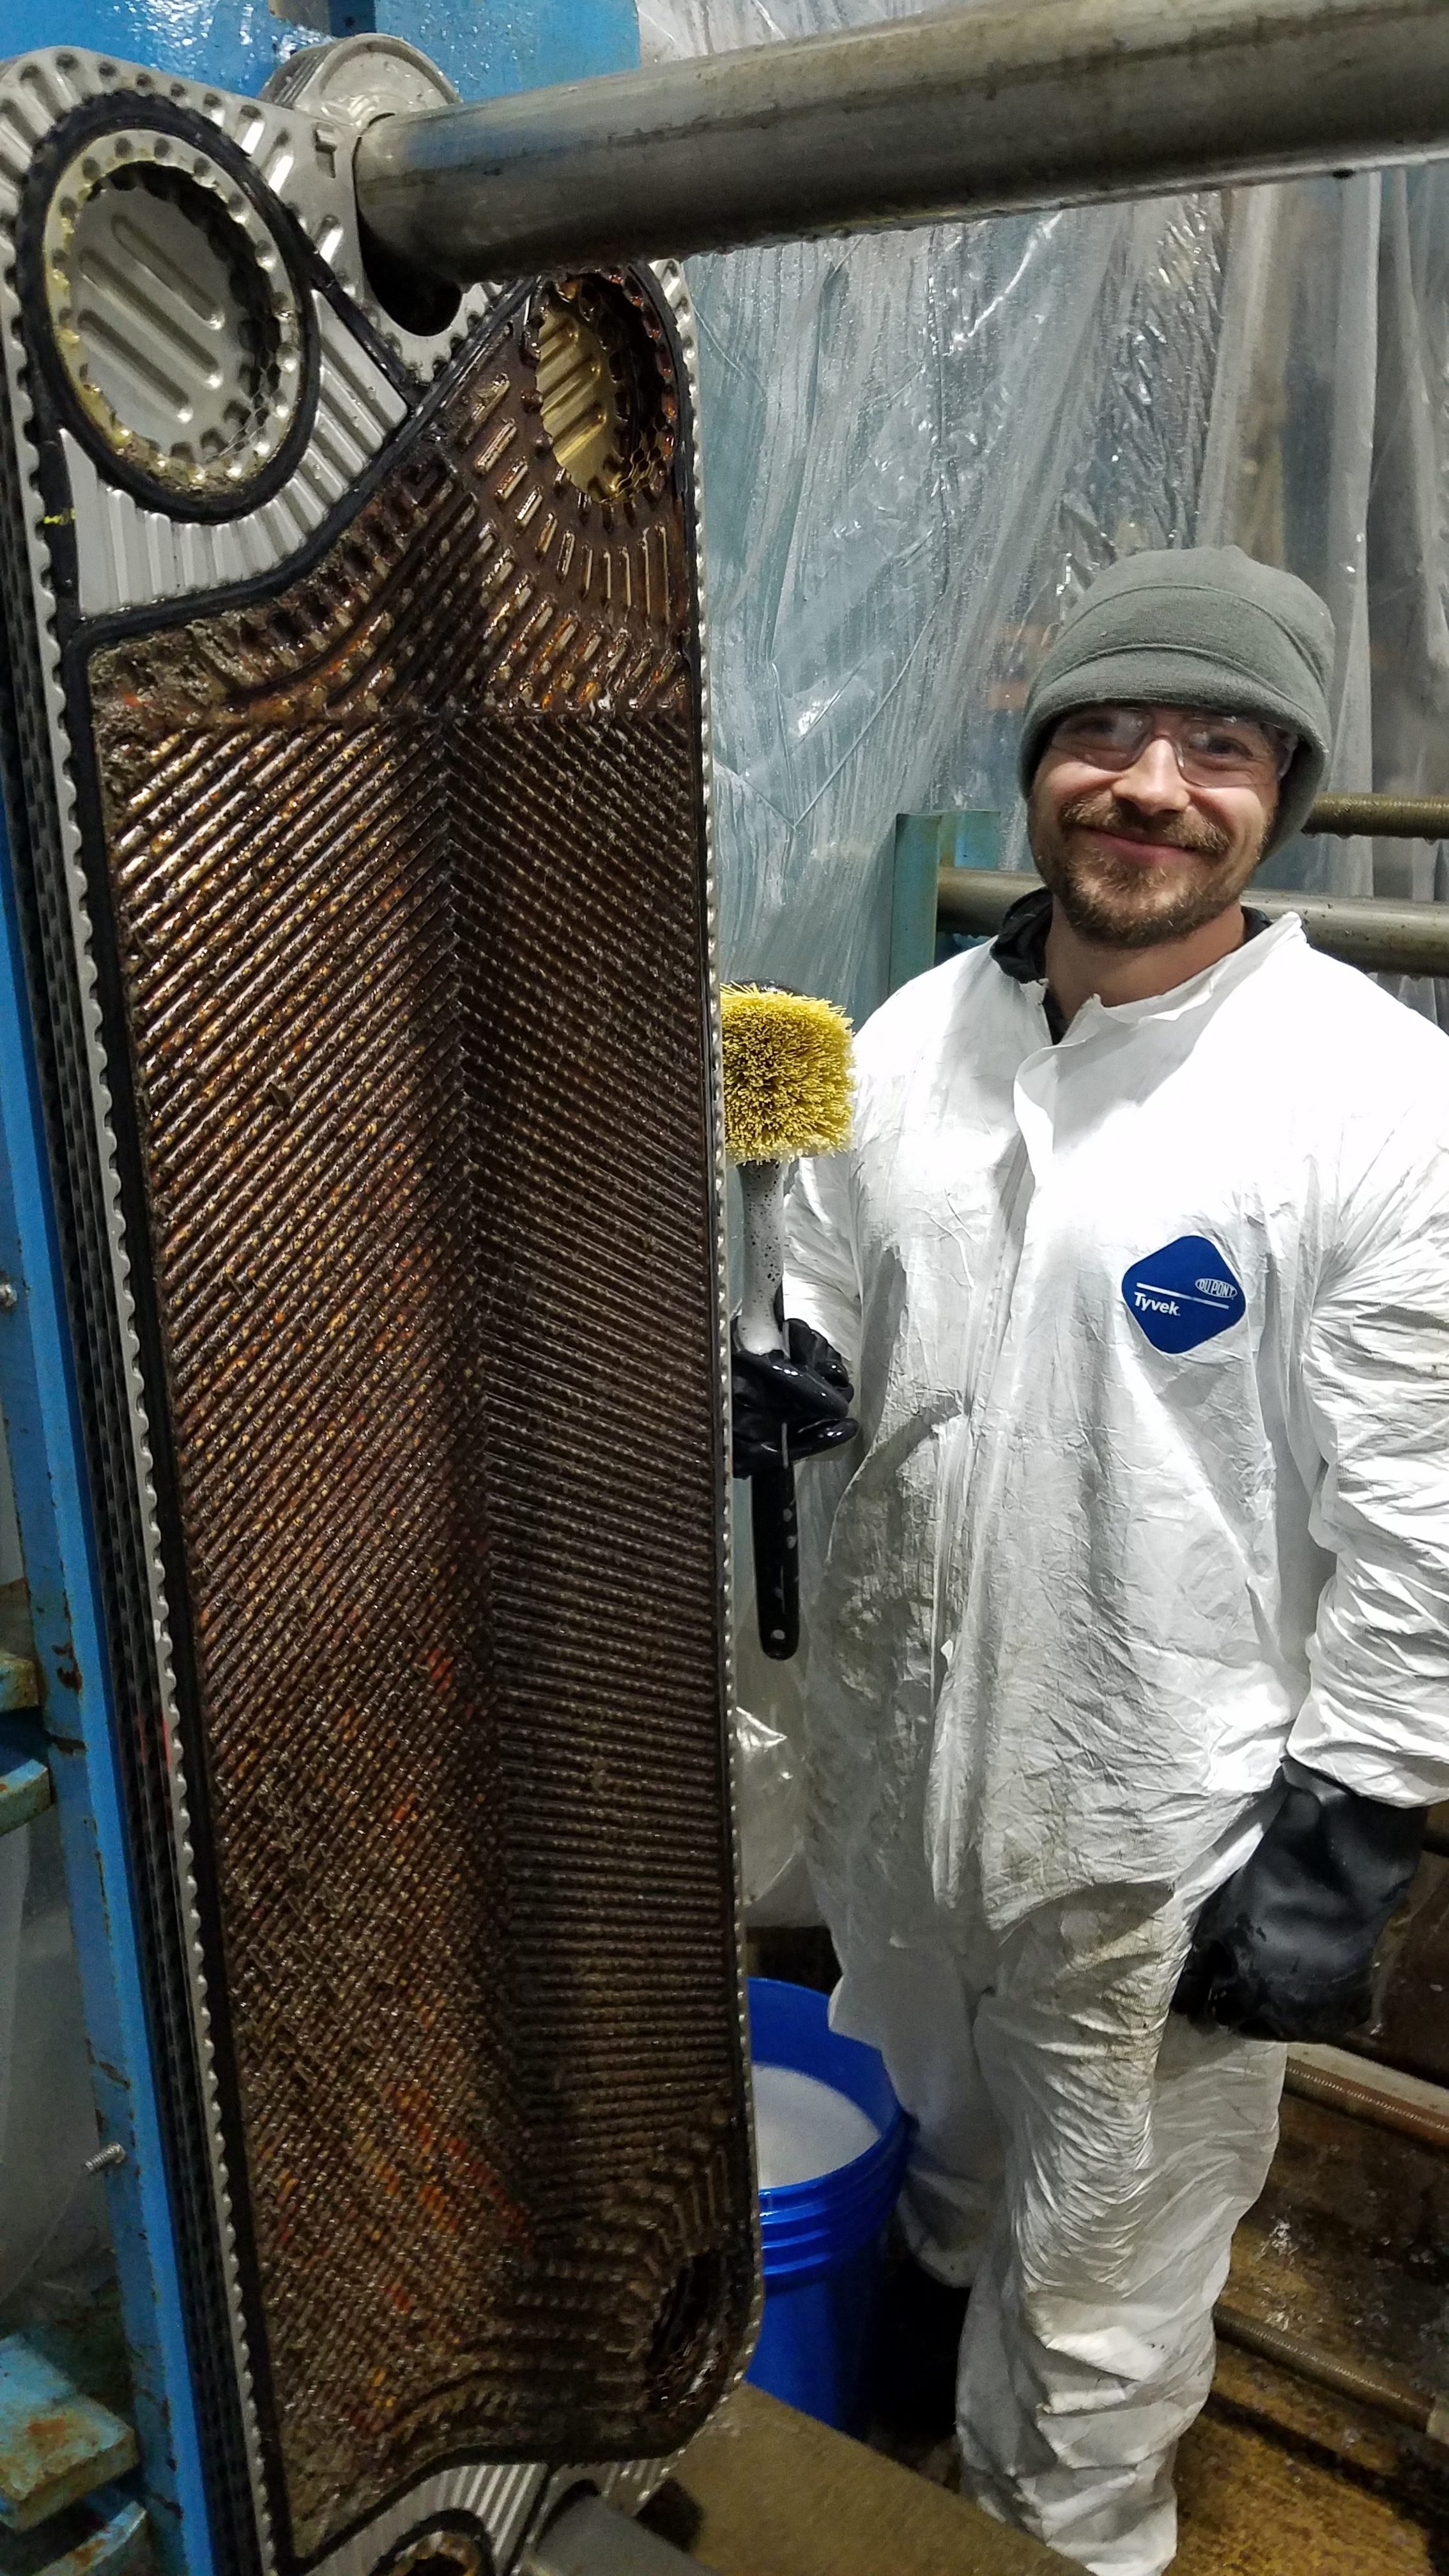 Ernest Feret smiles for the camera during an IB-1A heat exchanger cleaning. Each heat exchanger has 237 plates that need to be pressure-washed and scrubbed front and back. This is part of our yearly maintenance. people Photo: Randy Ward